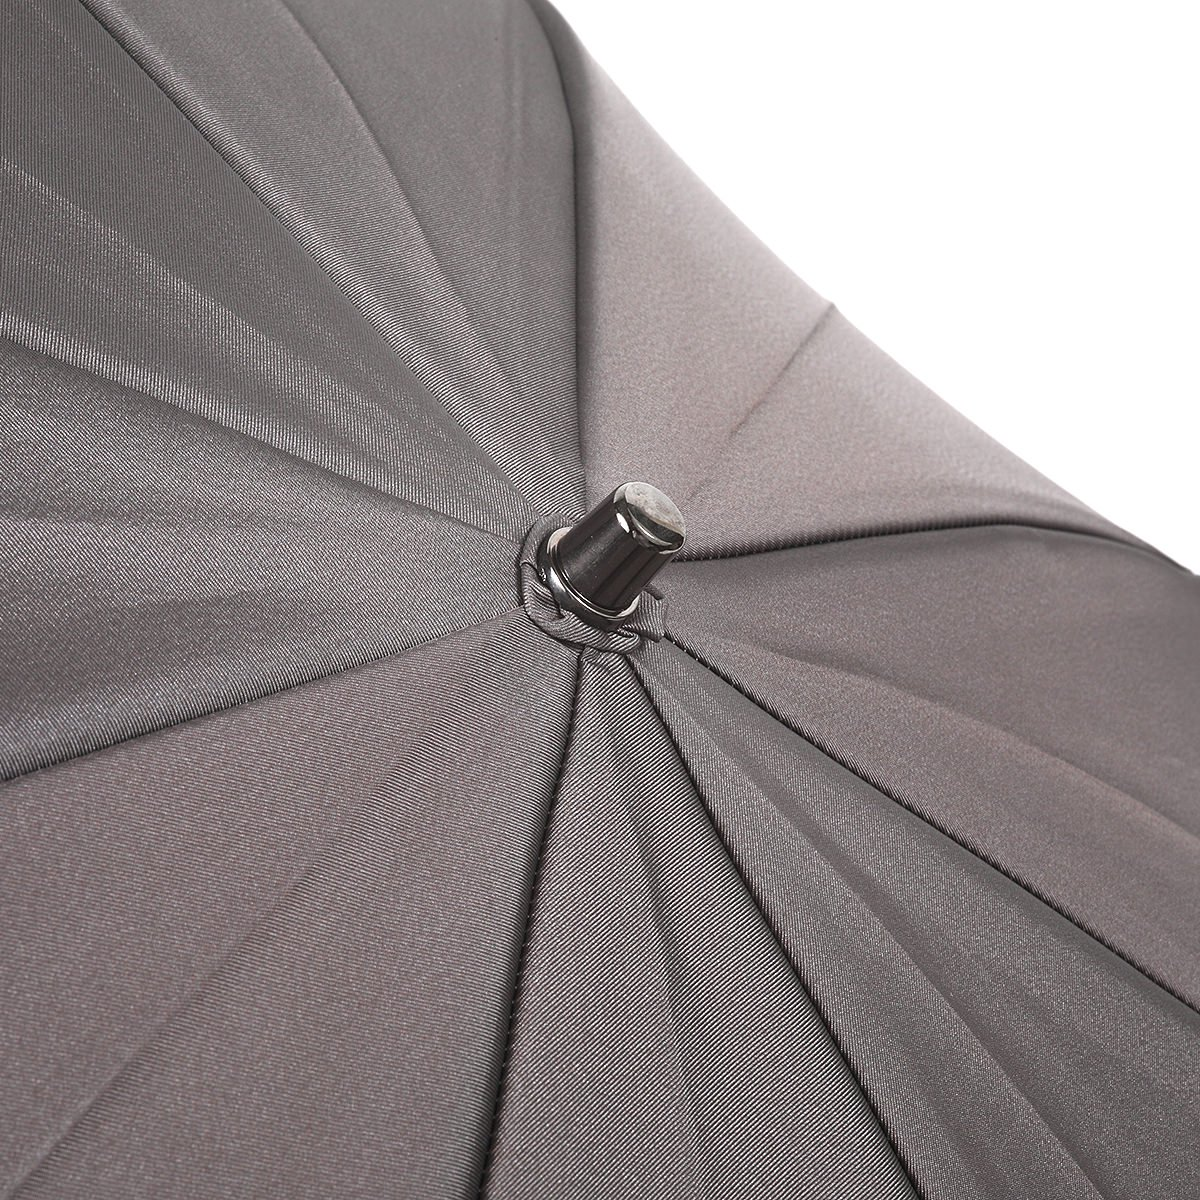 608K SOLID FOLDING UMBRELLA 詳細画像6